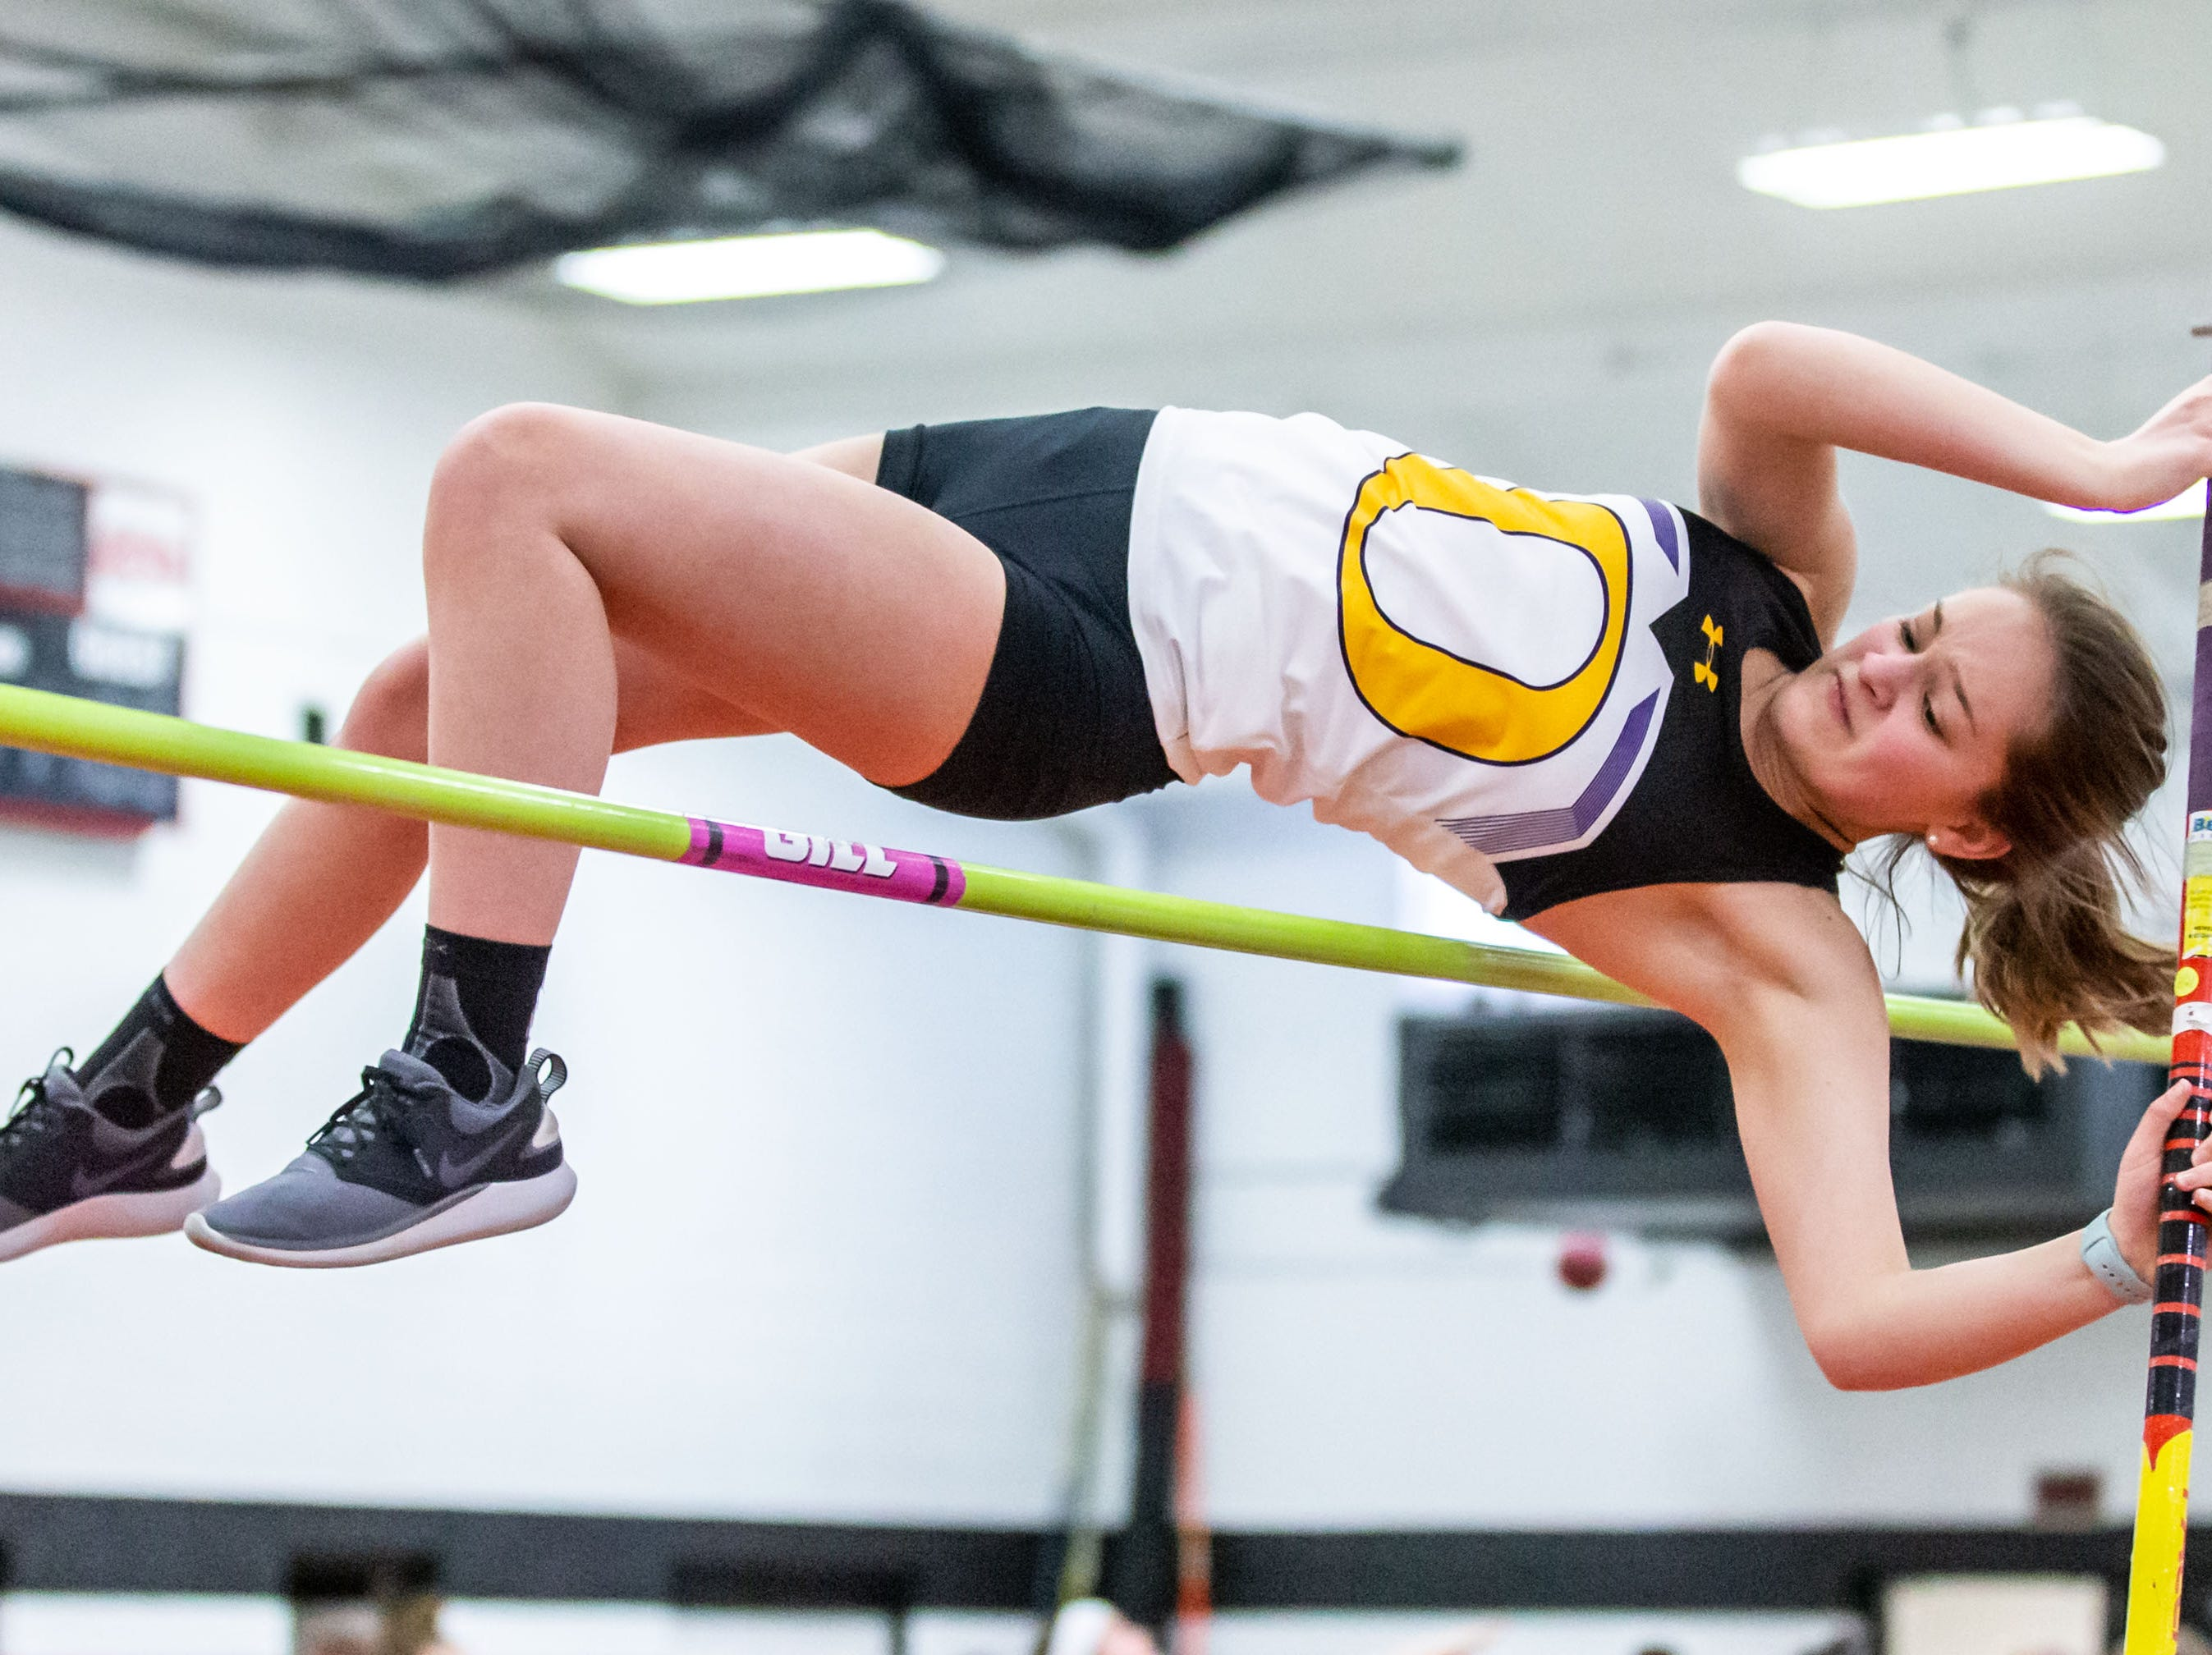 Oconomowoc's Sarah Kountz competes in the pole vault at the Peter Rempe Cardinal Relays hosted by Waukesha South on Thursday, March 21, 2019.